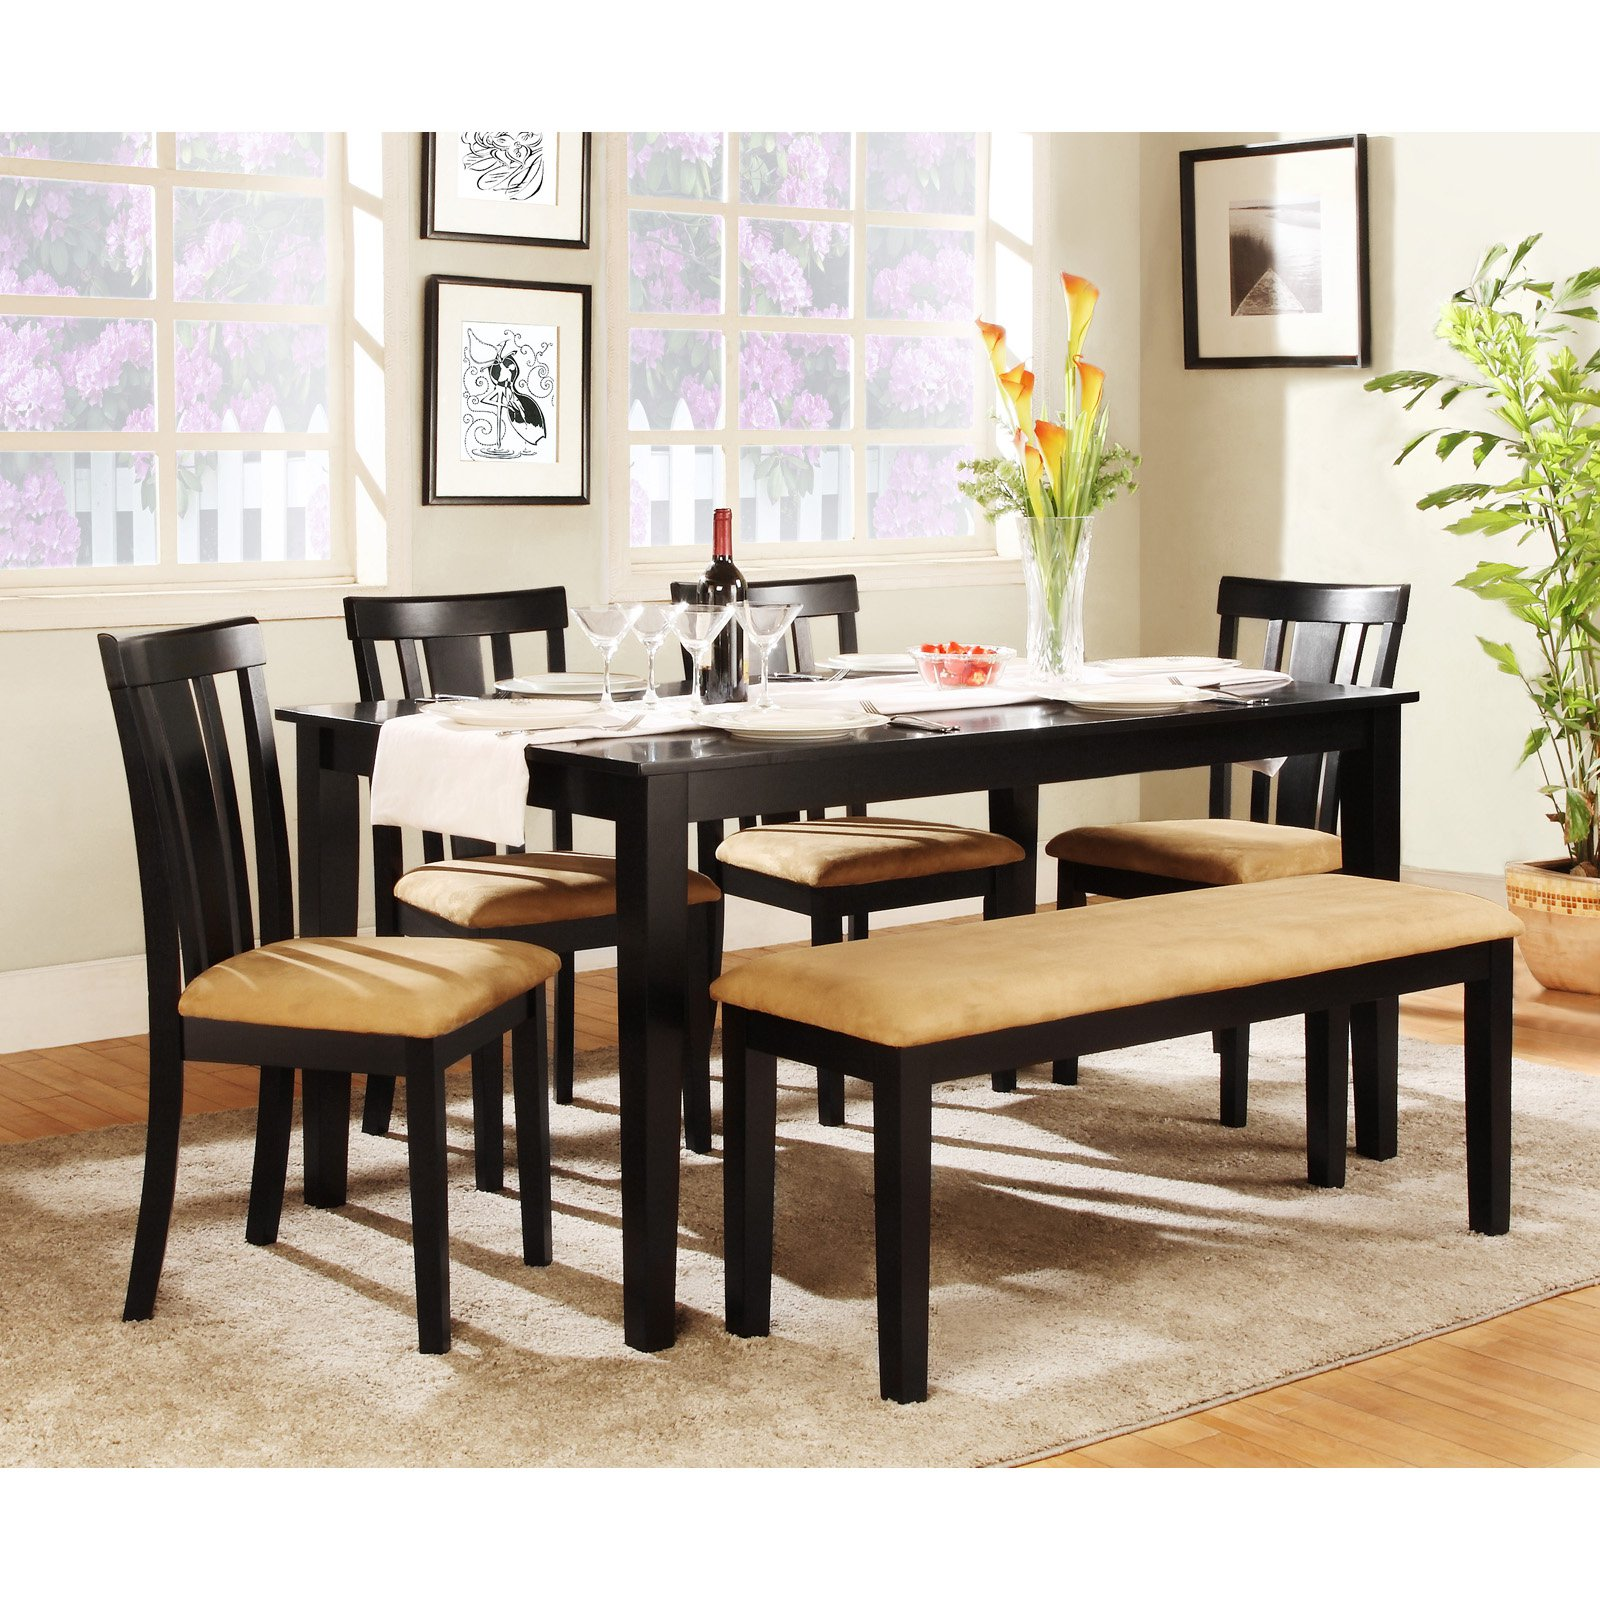 Homelegance Tibalt 6 Piece Rectangle Black Dining Table Set - 60 in....